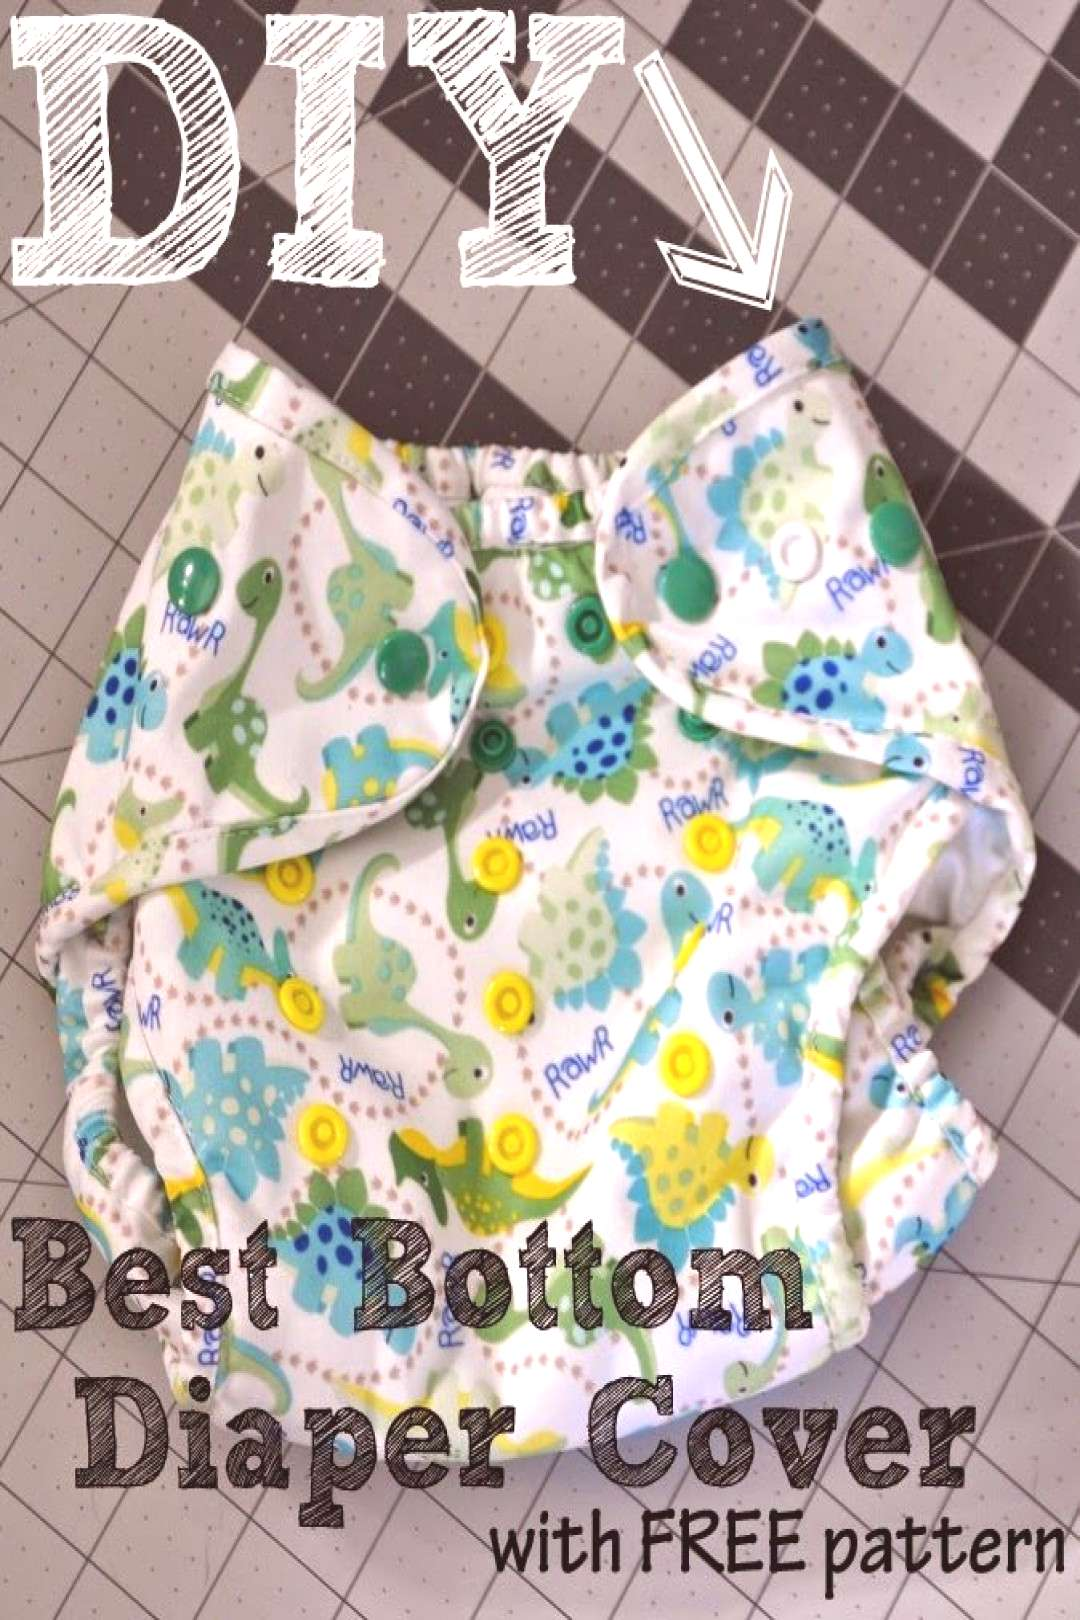 The Life of a Compulsive Crafter DIY Best Bottom Diaper Covers with FREE Pattern